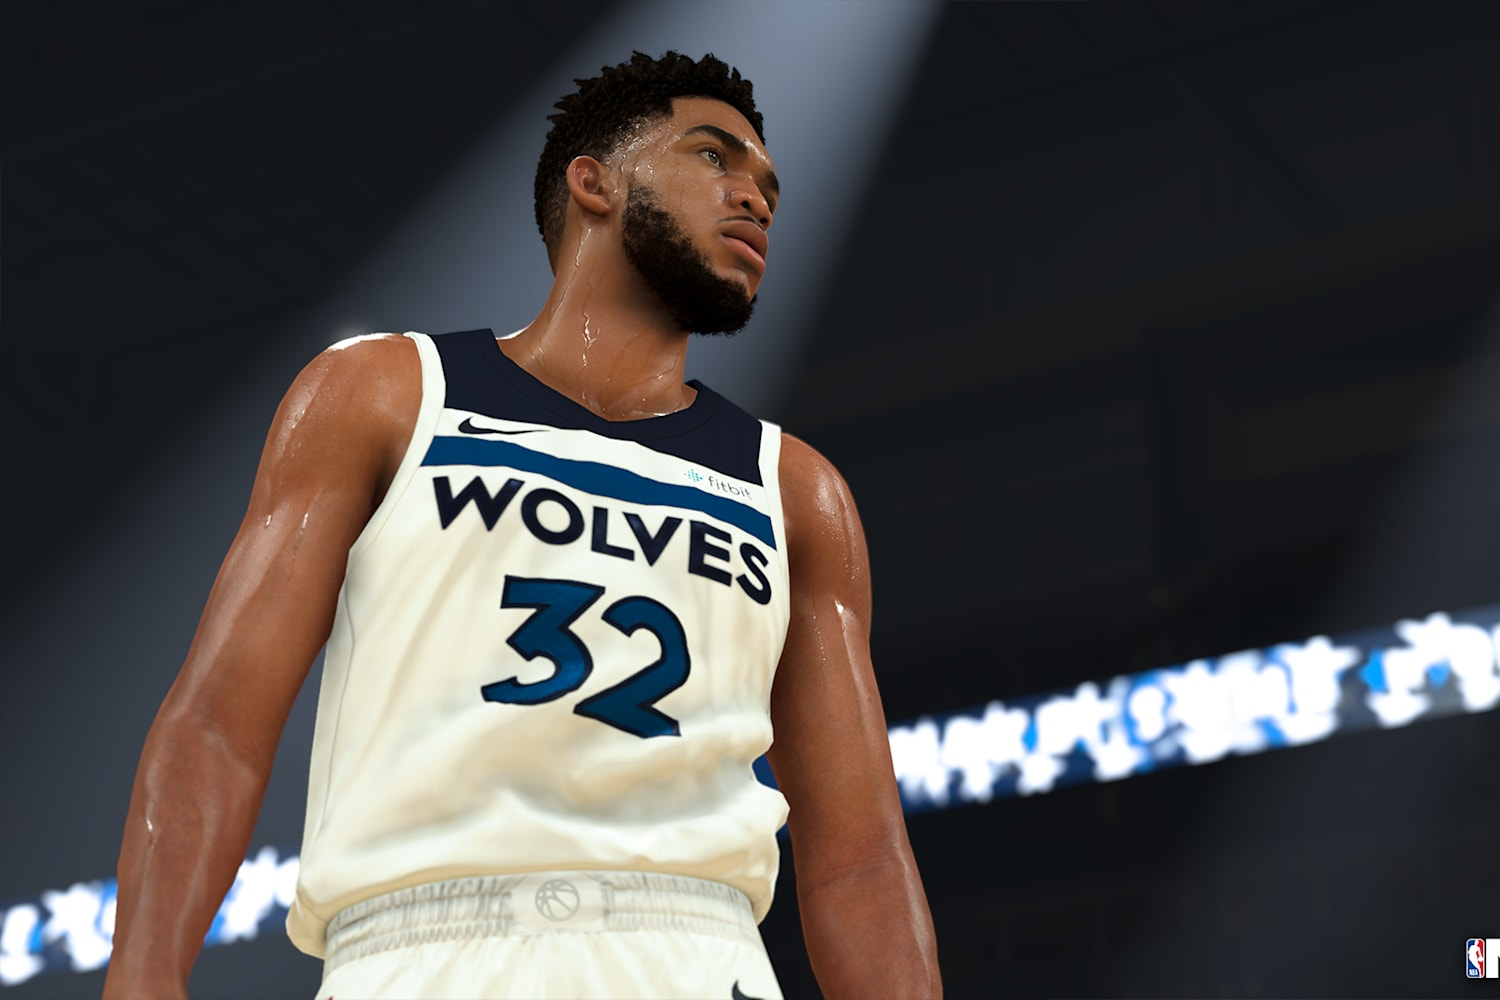 Nba 2k20 Tips How To Score Defend And Steal Guide